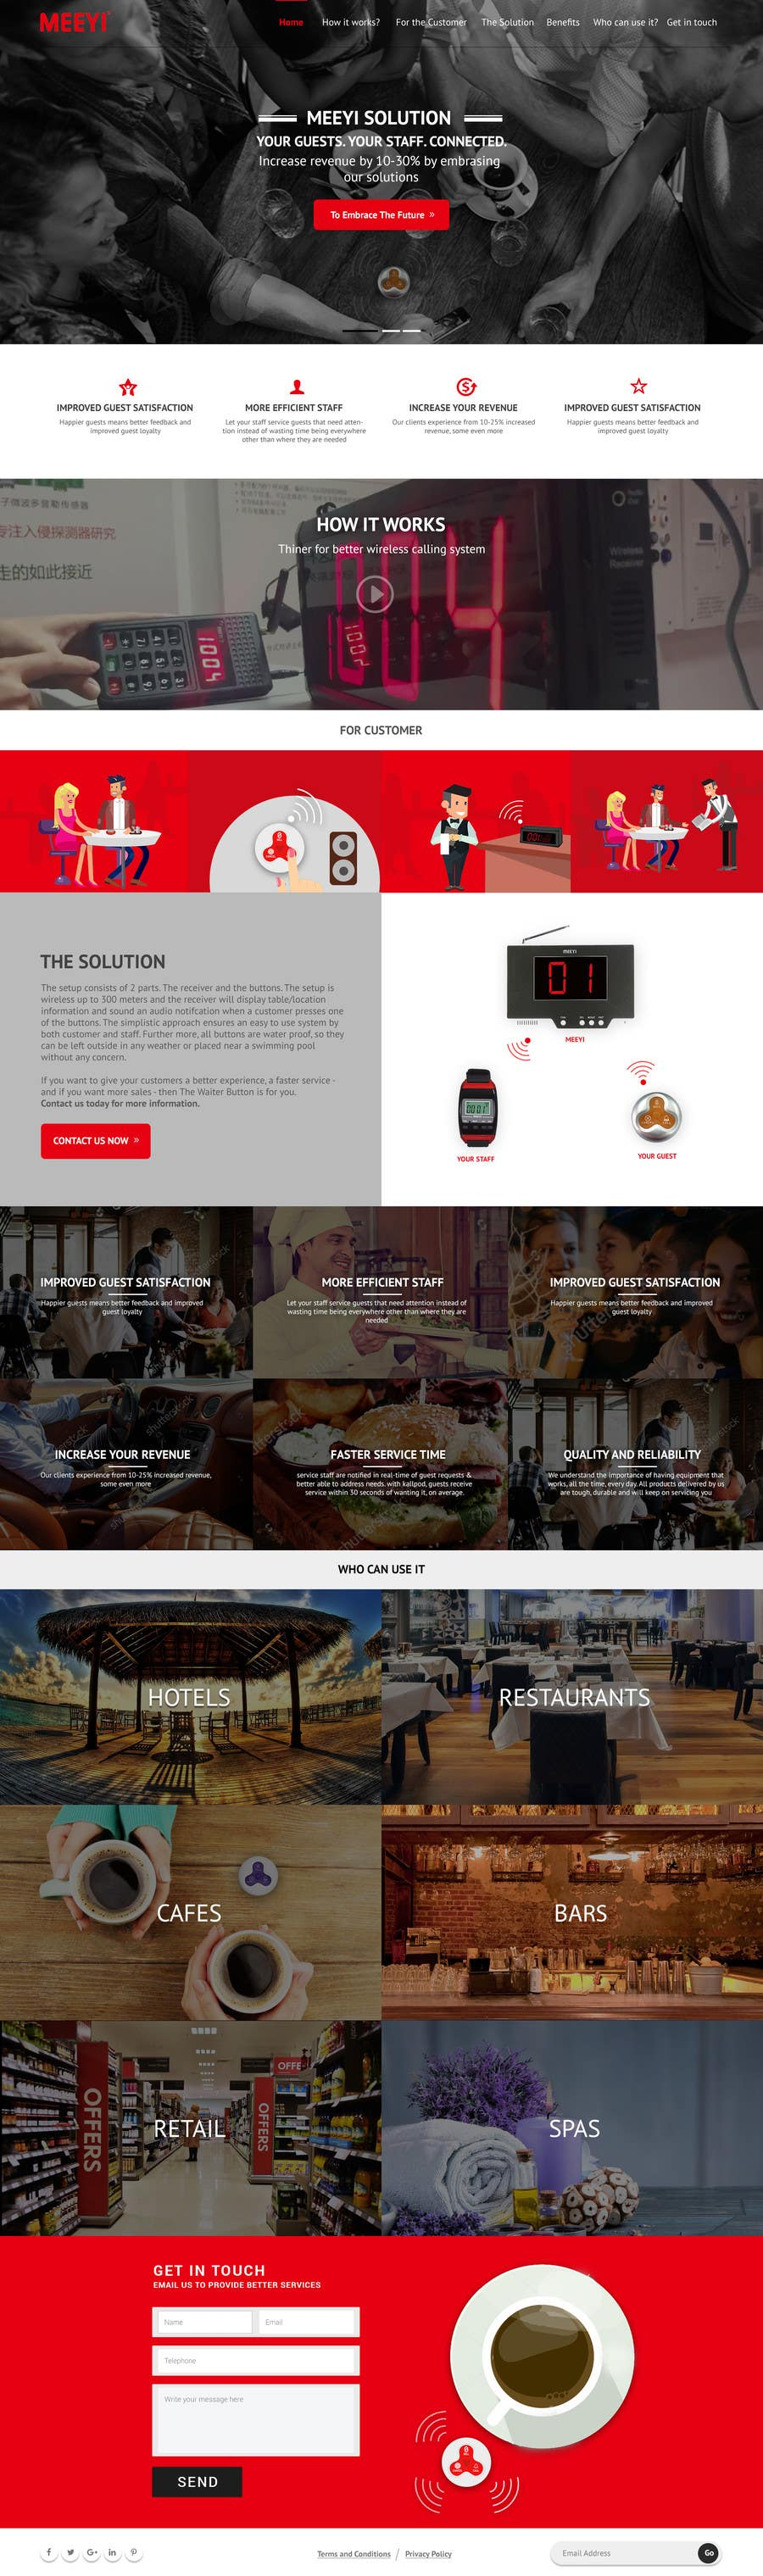 Proposition n°26 du concours Design a Website Mockup for a new product